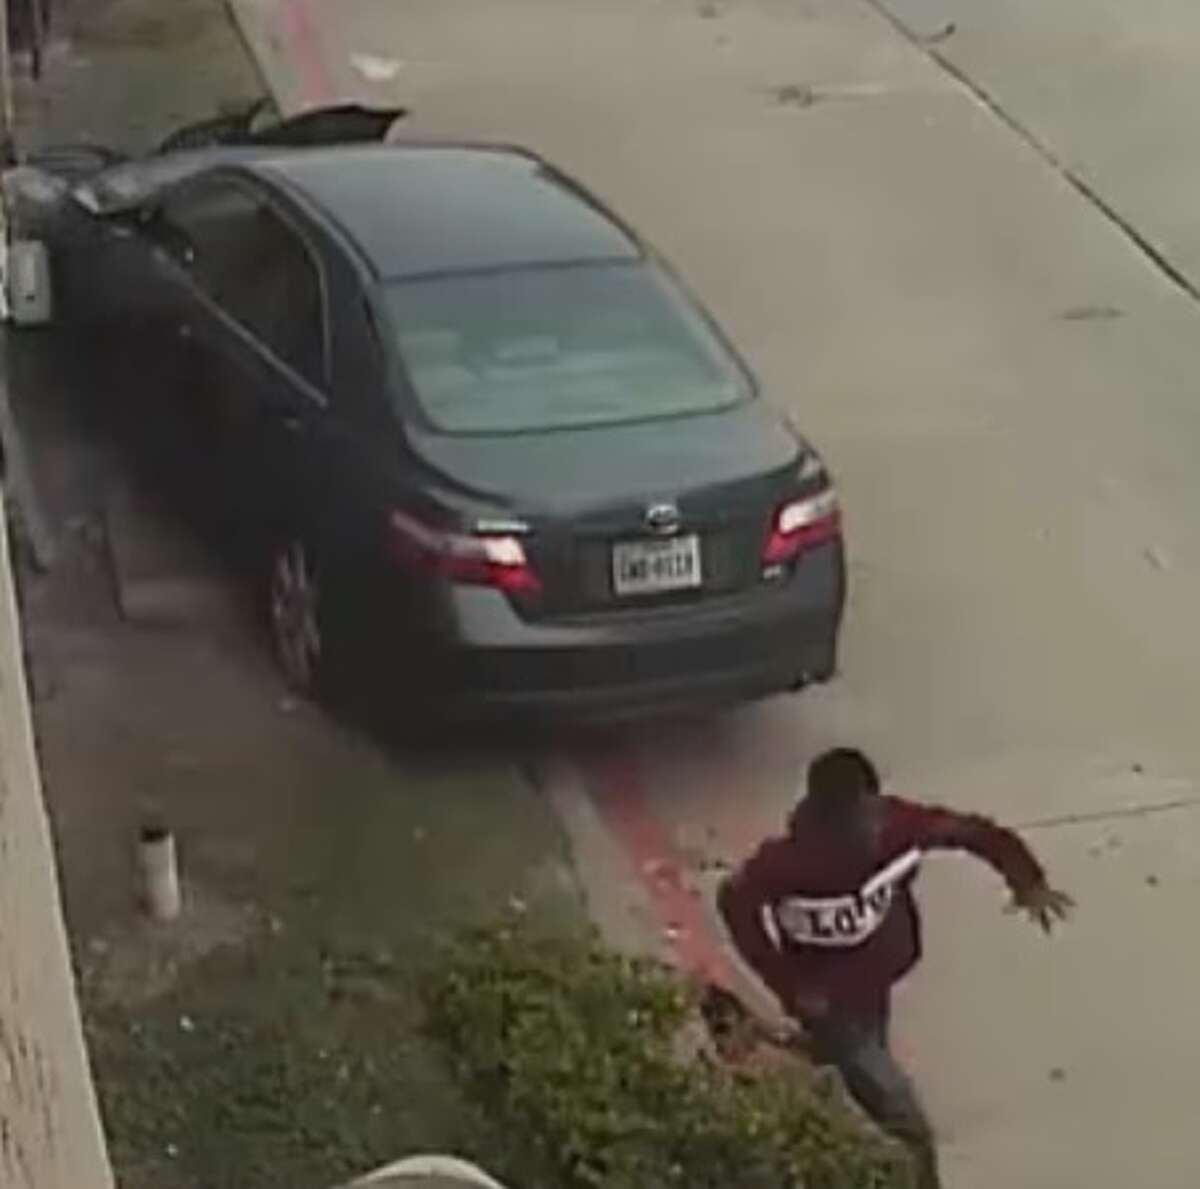 Houston police are searching for four young suspects who allegedly carjacked a pregnant woman, then later crashed her car at an apartment complex before fleeing the scene. The carjacking occurred on Dec. 14, 2017, and the crash depicted in these surveillance images occurred the next day, police said.